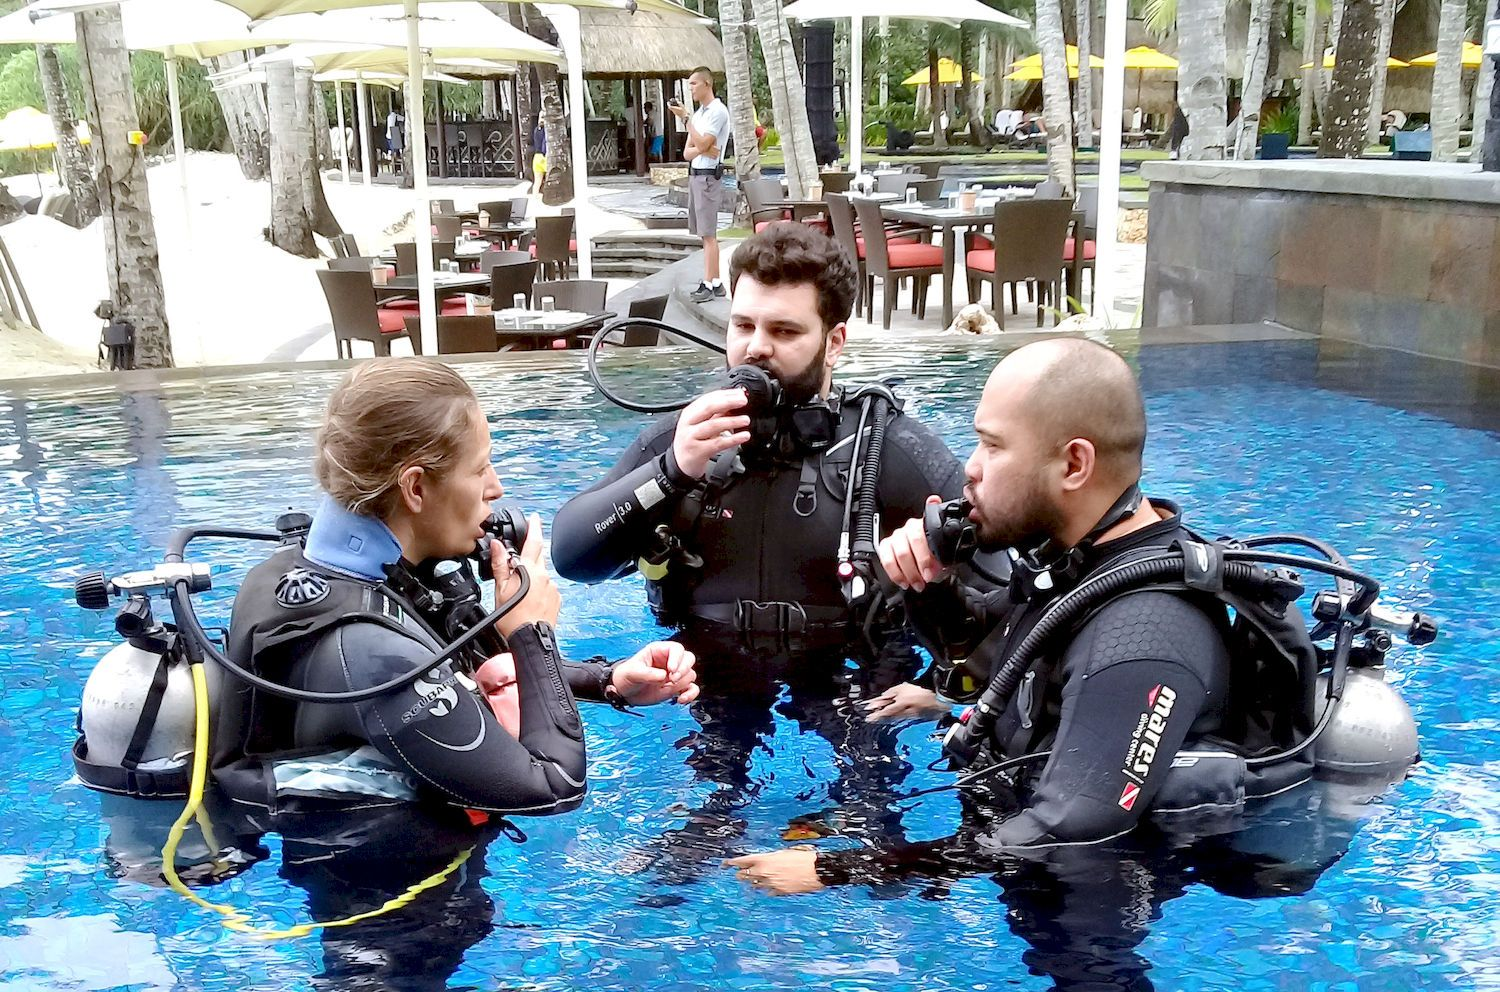 From Bev Naz and Ian undertook their SSI Try Scuba